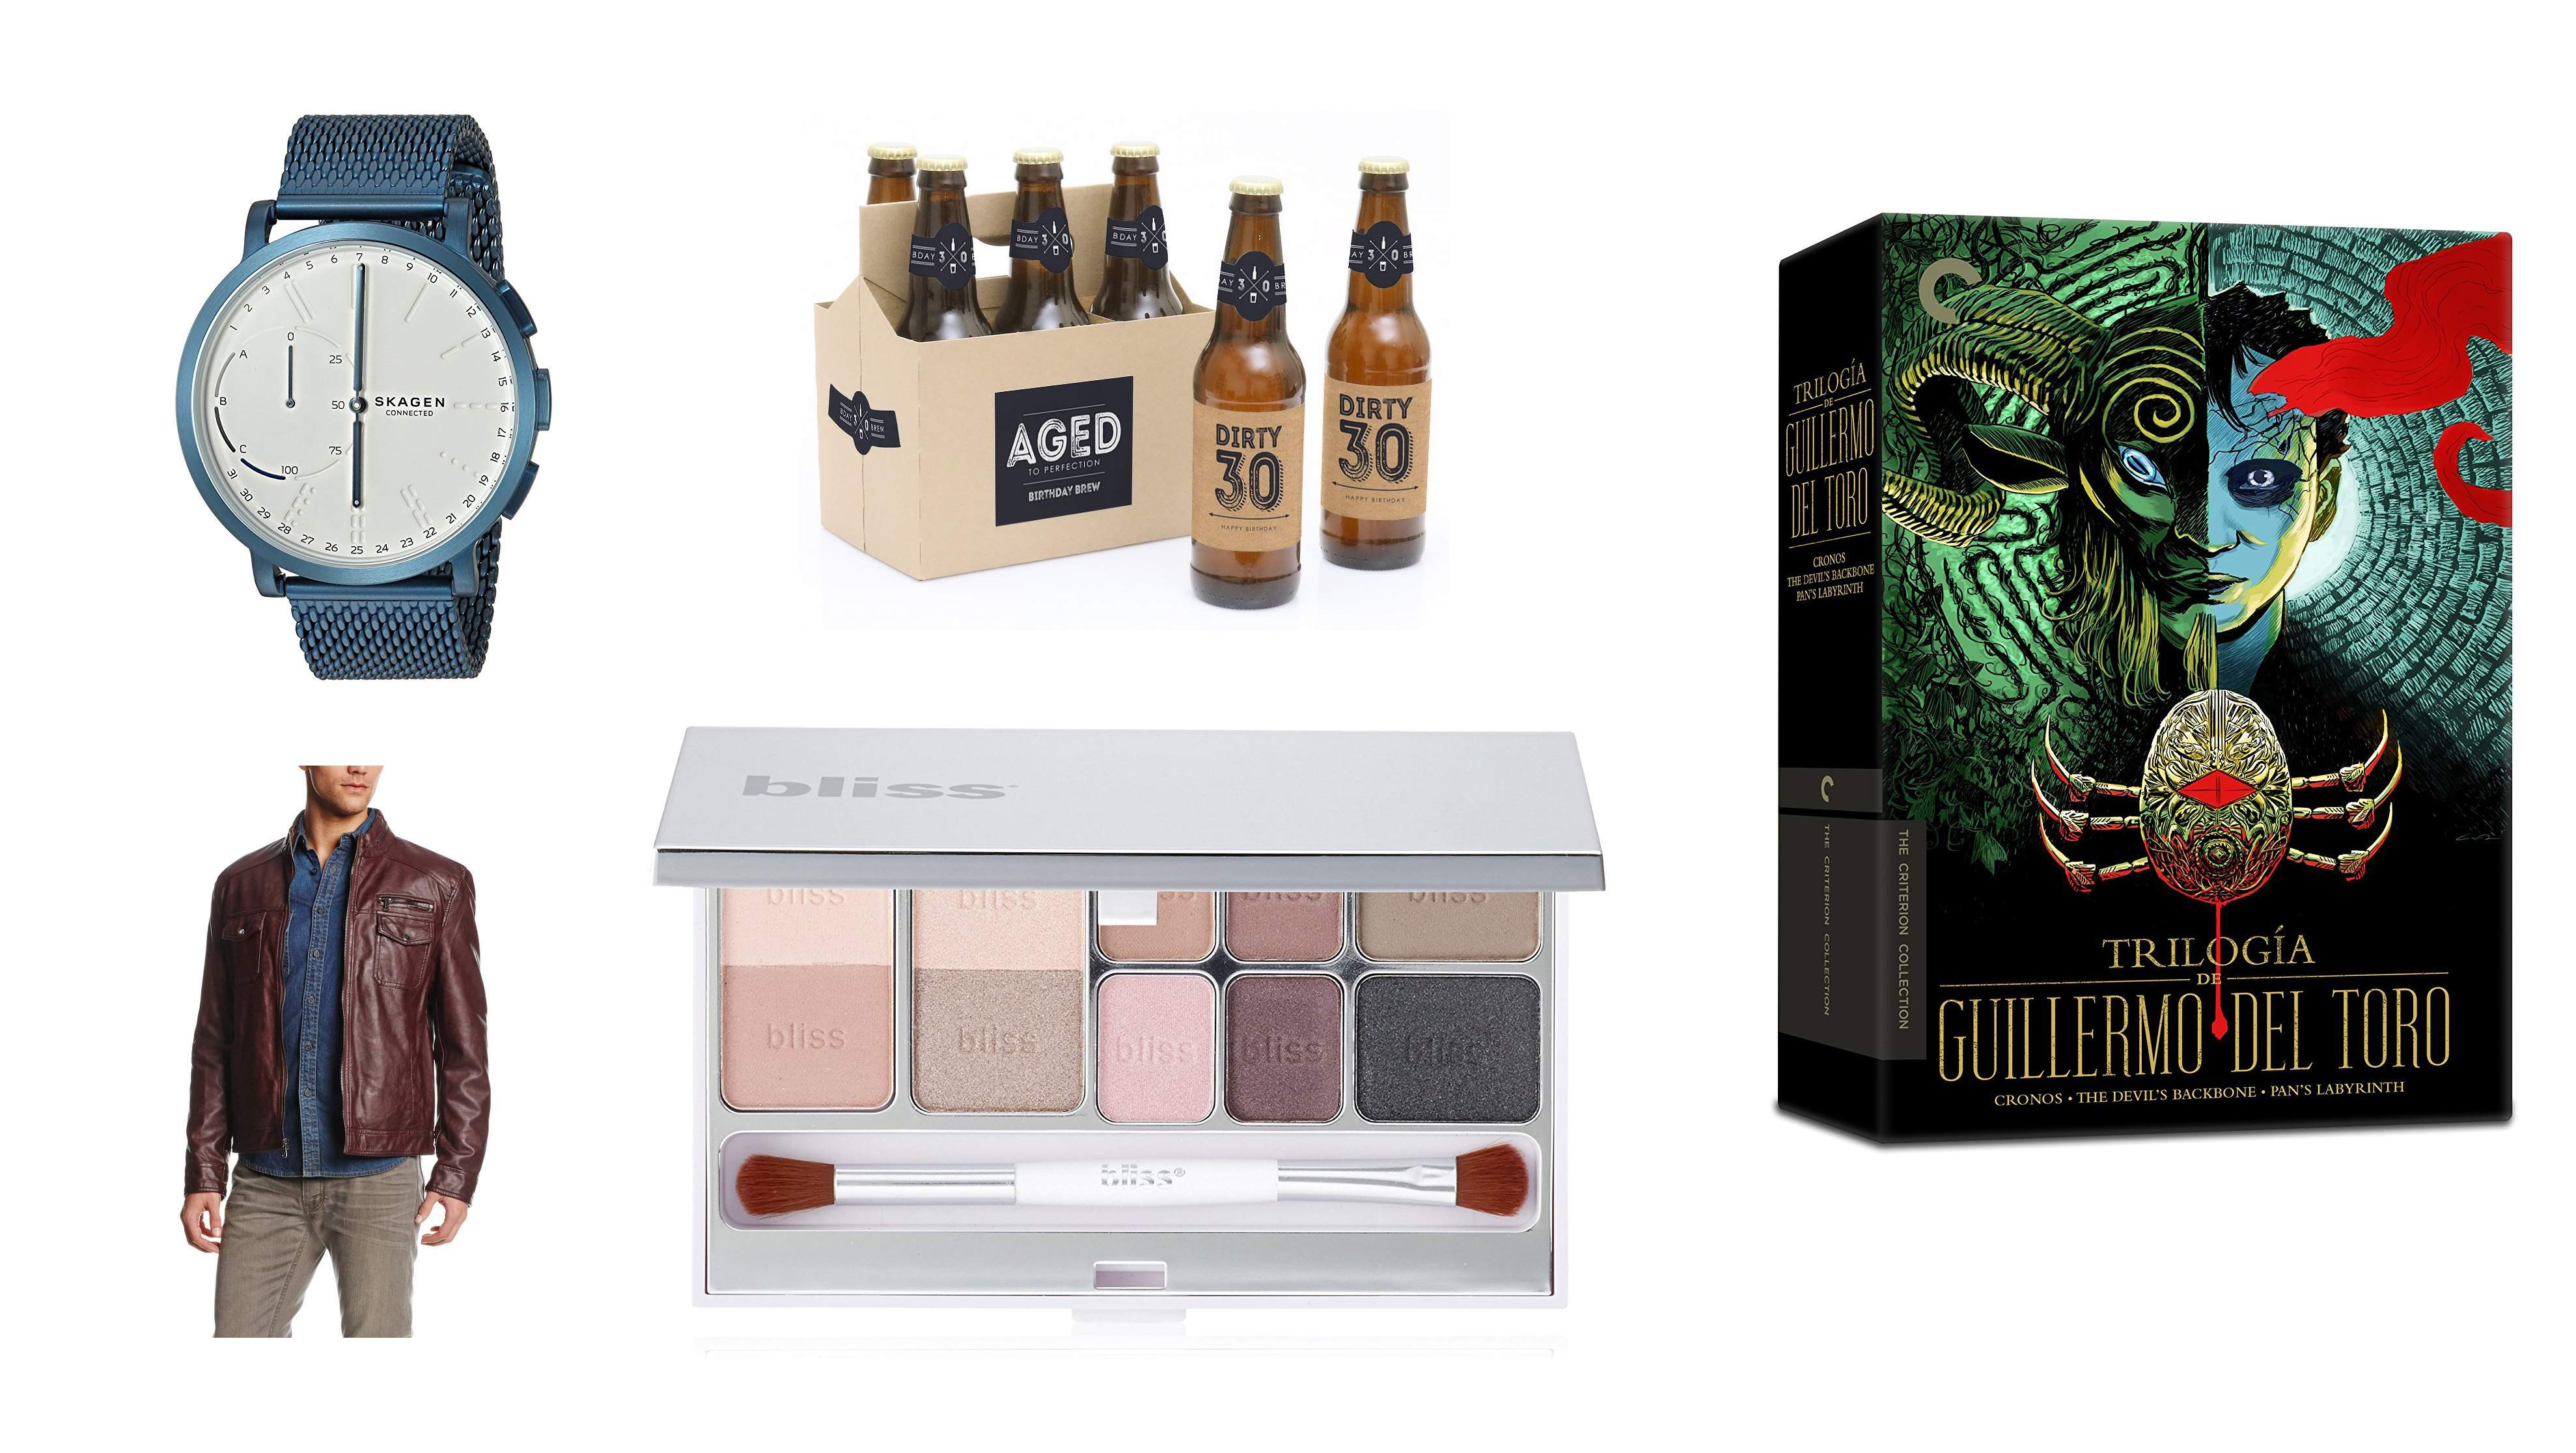 Best ideas about Birthday Gifts Men . Save or Pin Top 10 Best 30th Birthday Gifts for Men & Women 2018 Now.